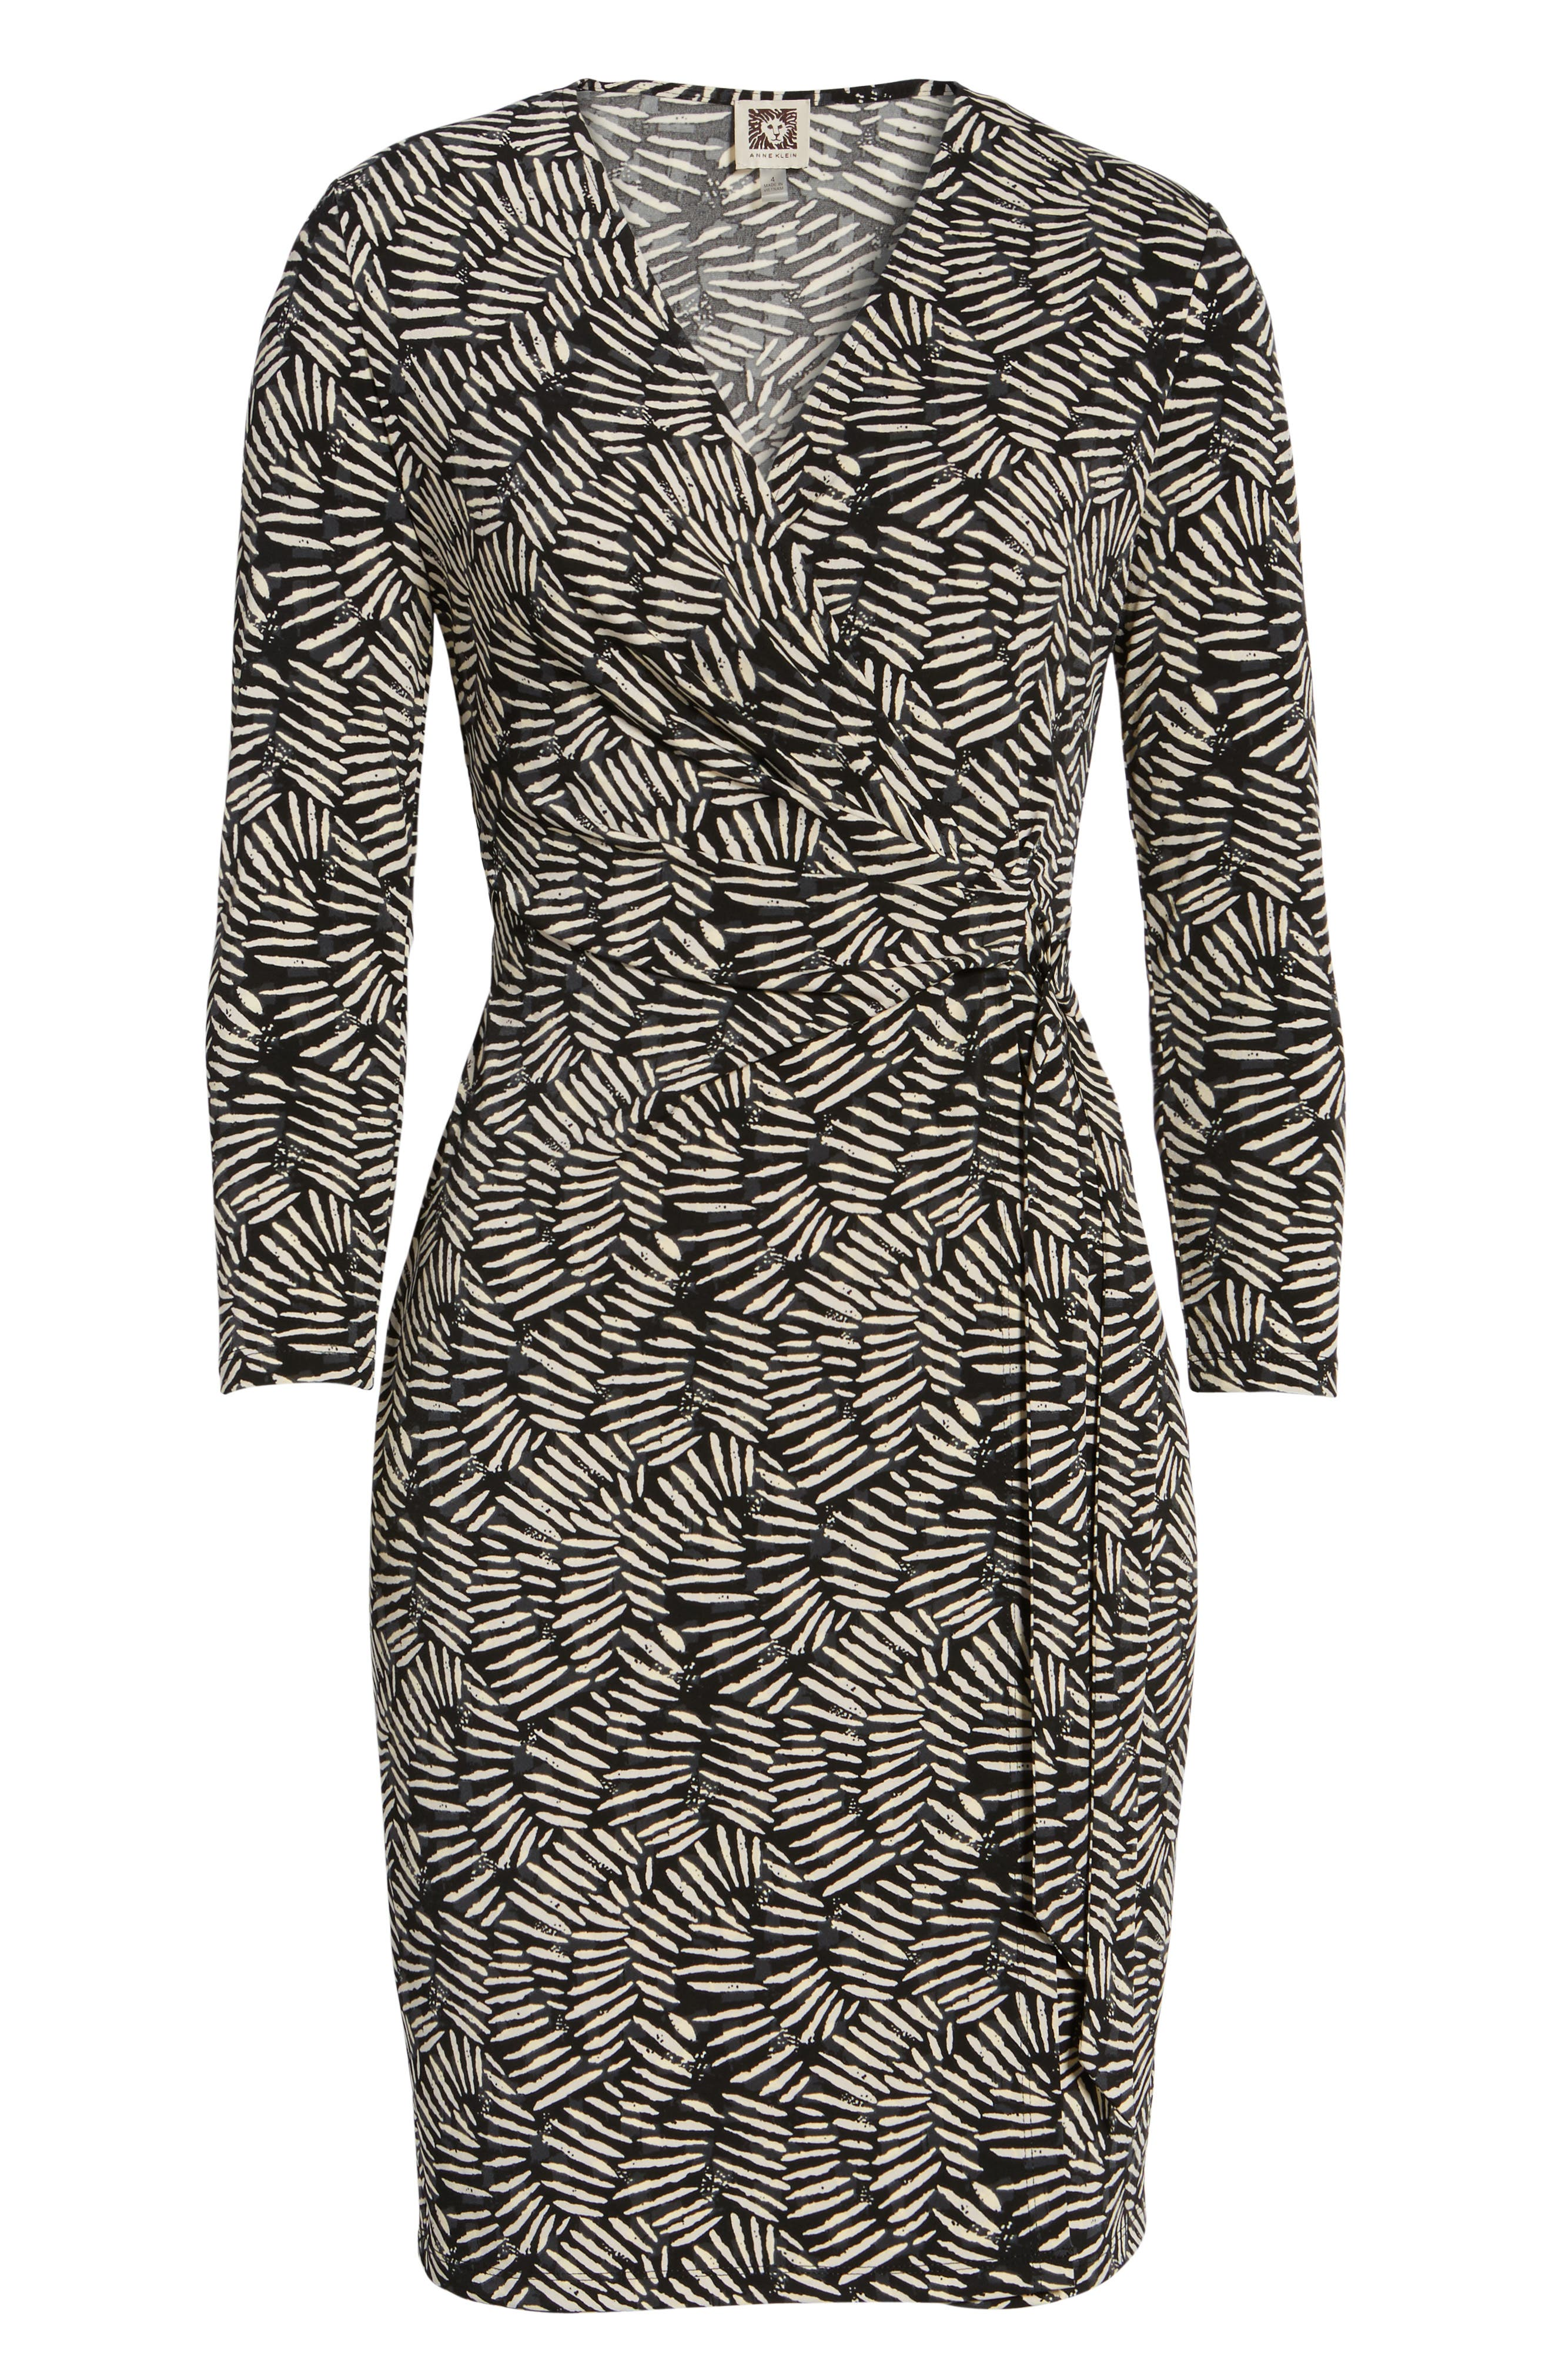 Print Wrap Dress,                             Alternate thumbnail 6, color,                             011